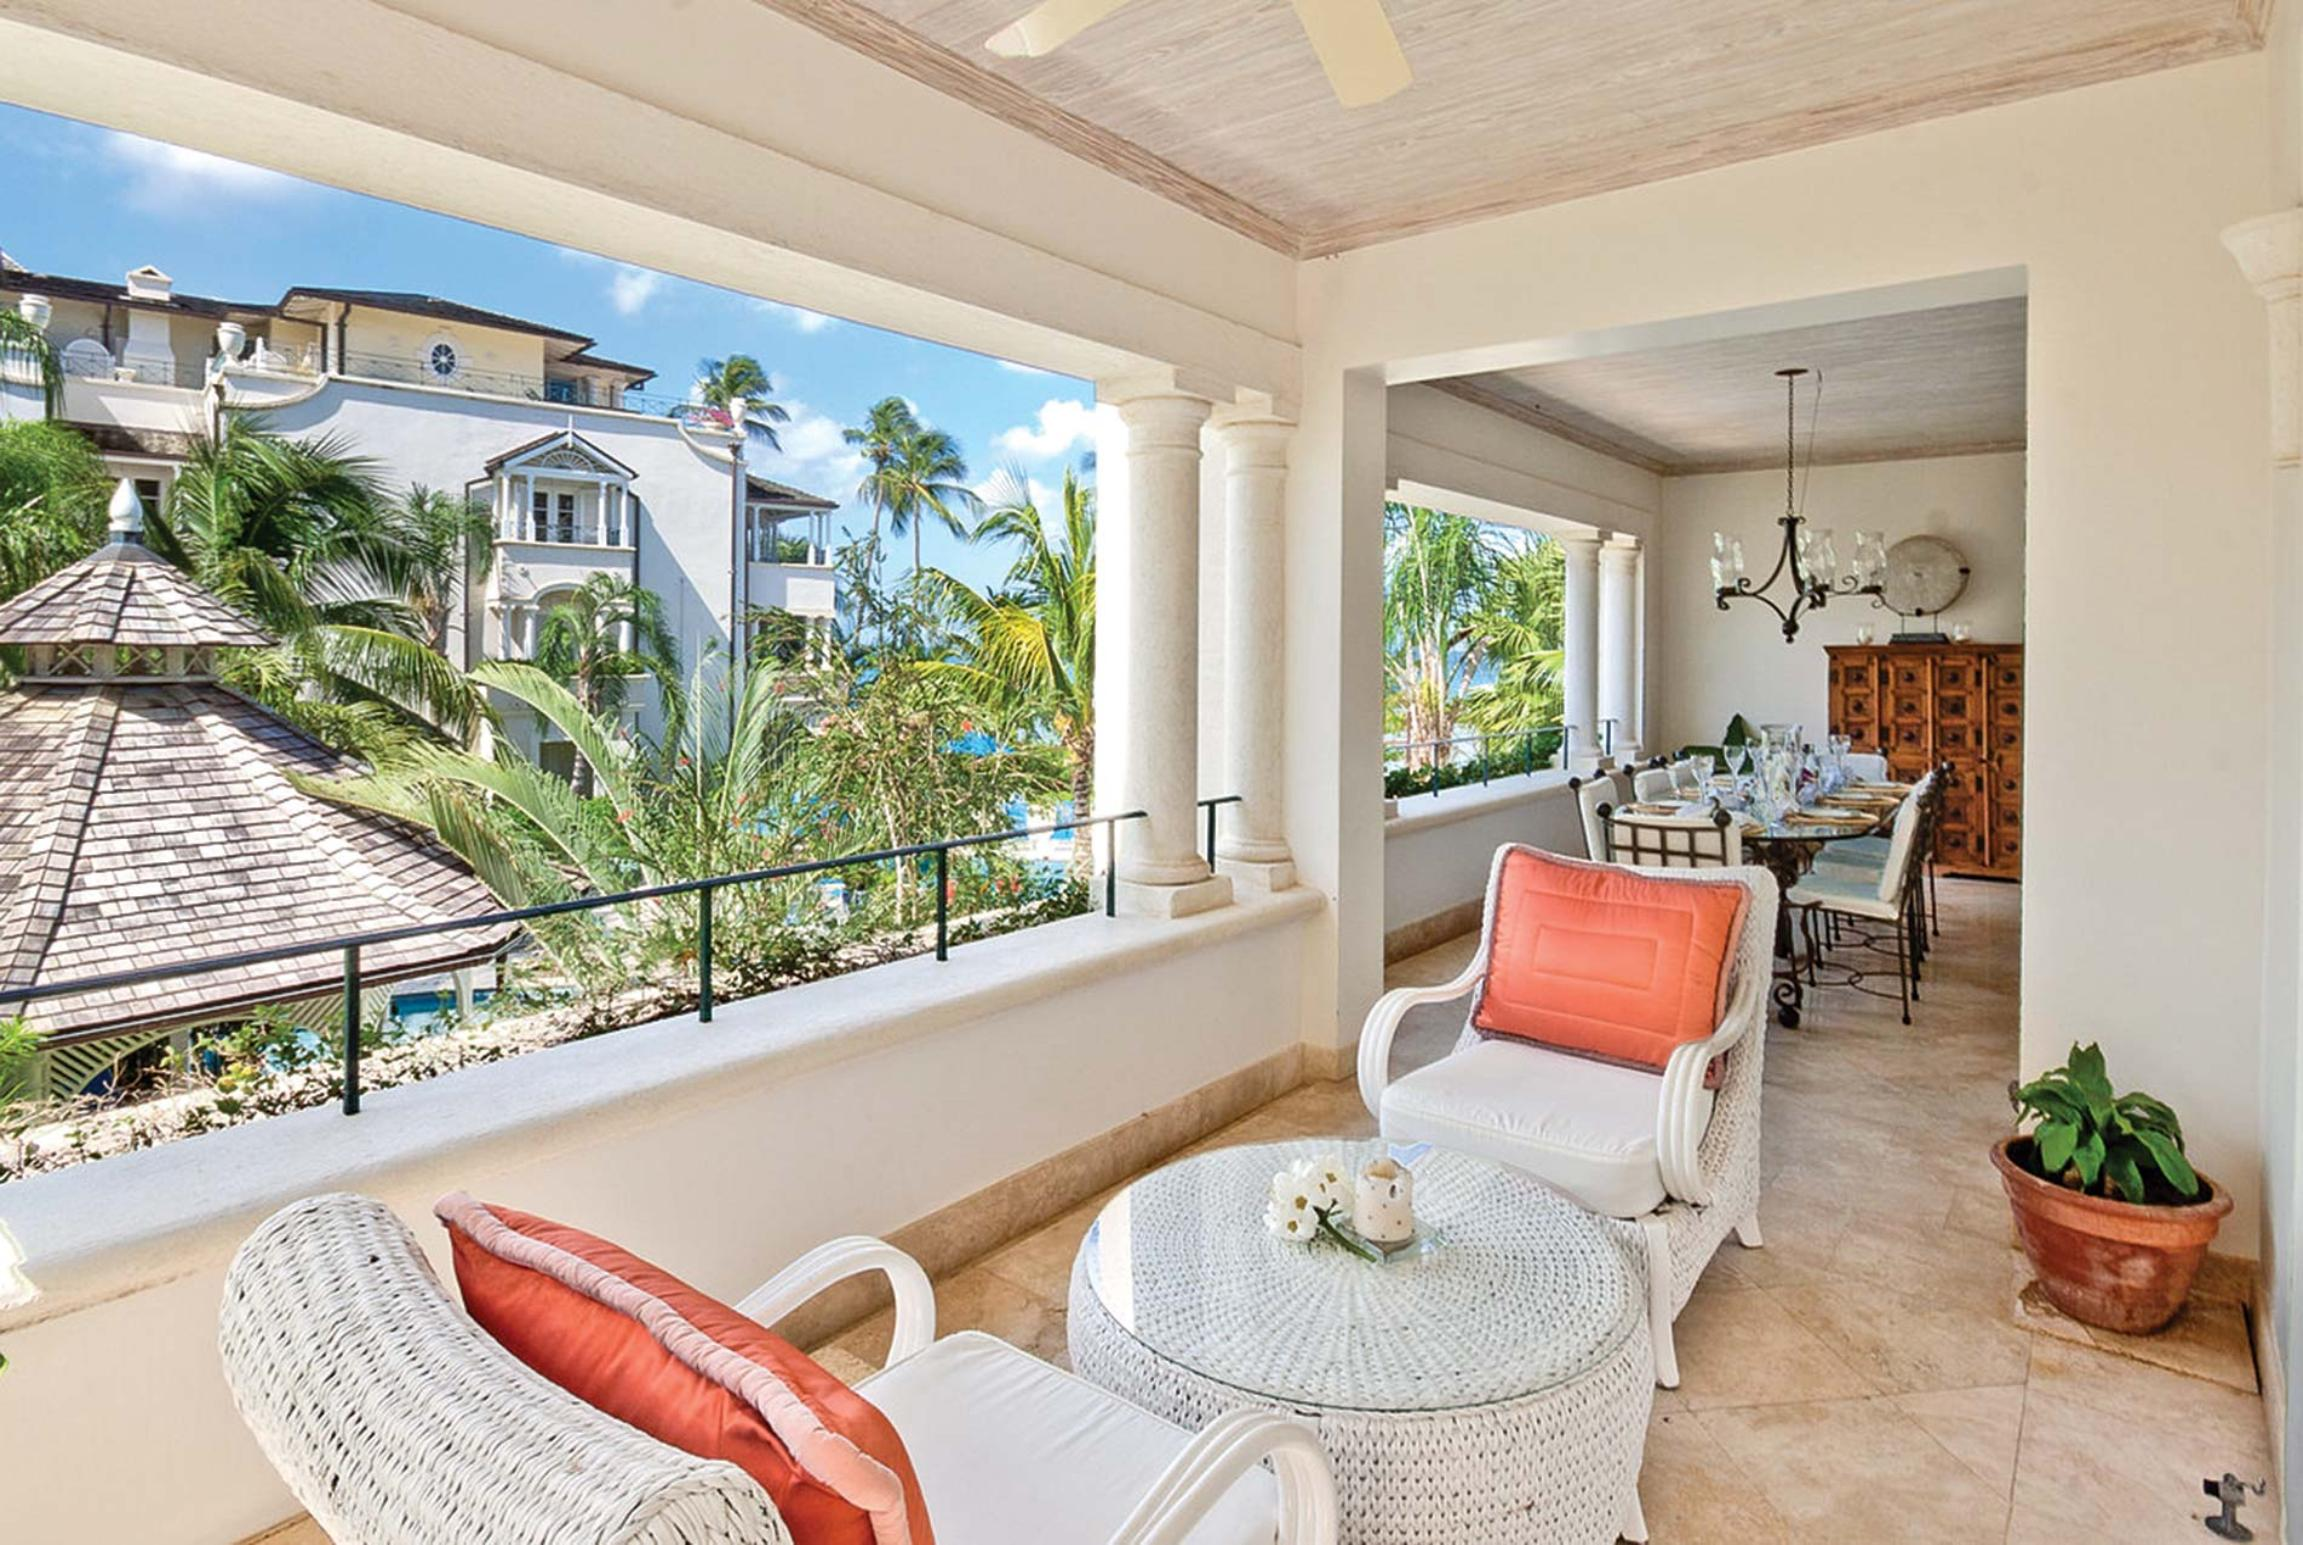 Read more about Tropical villa